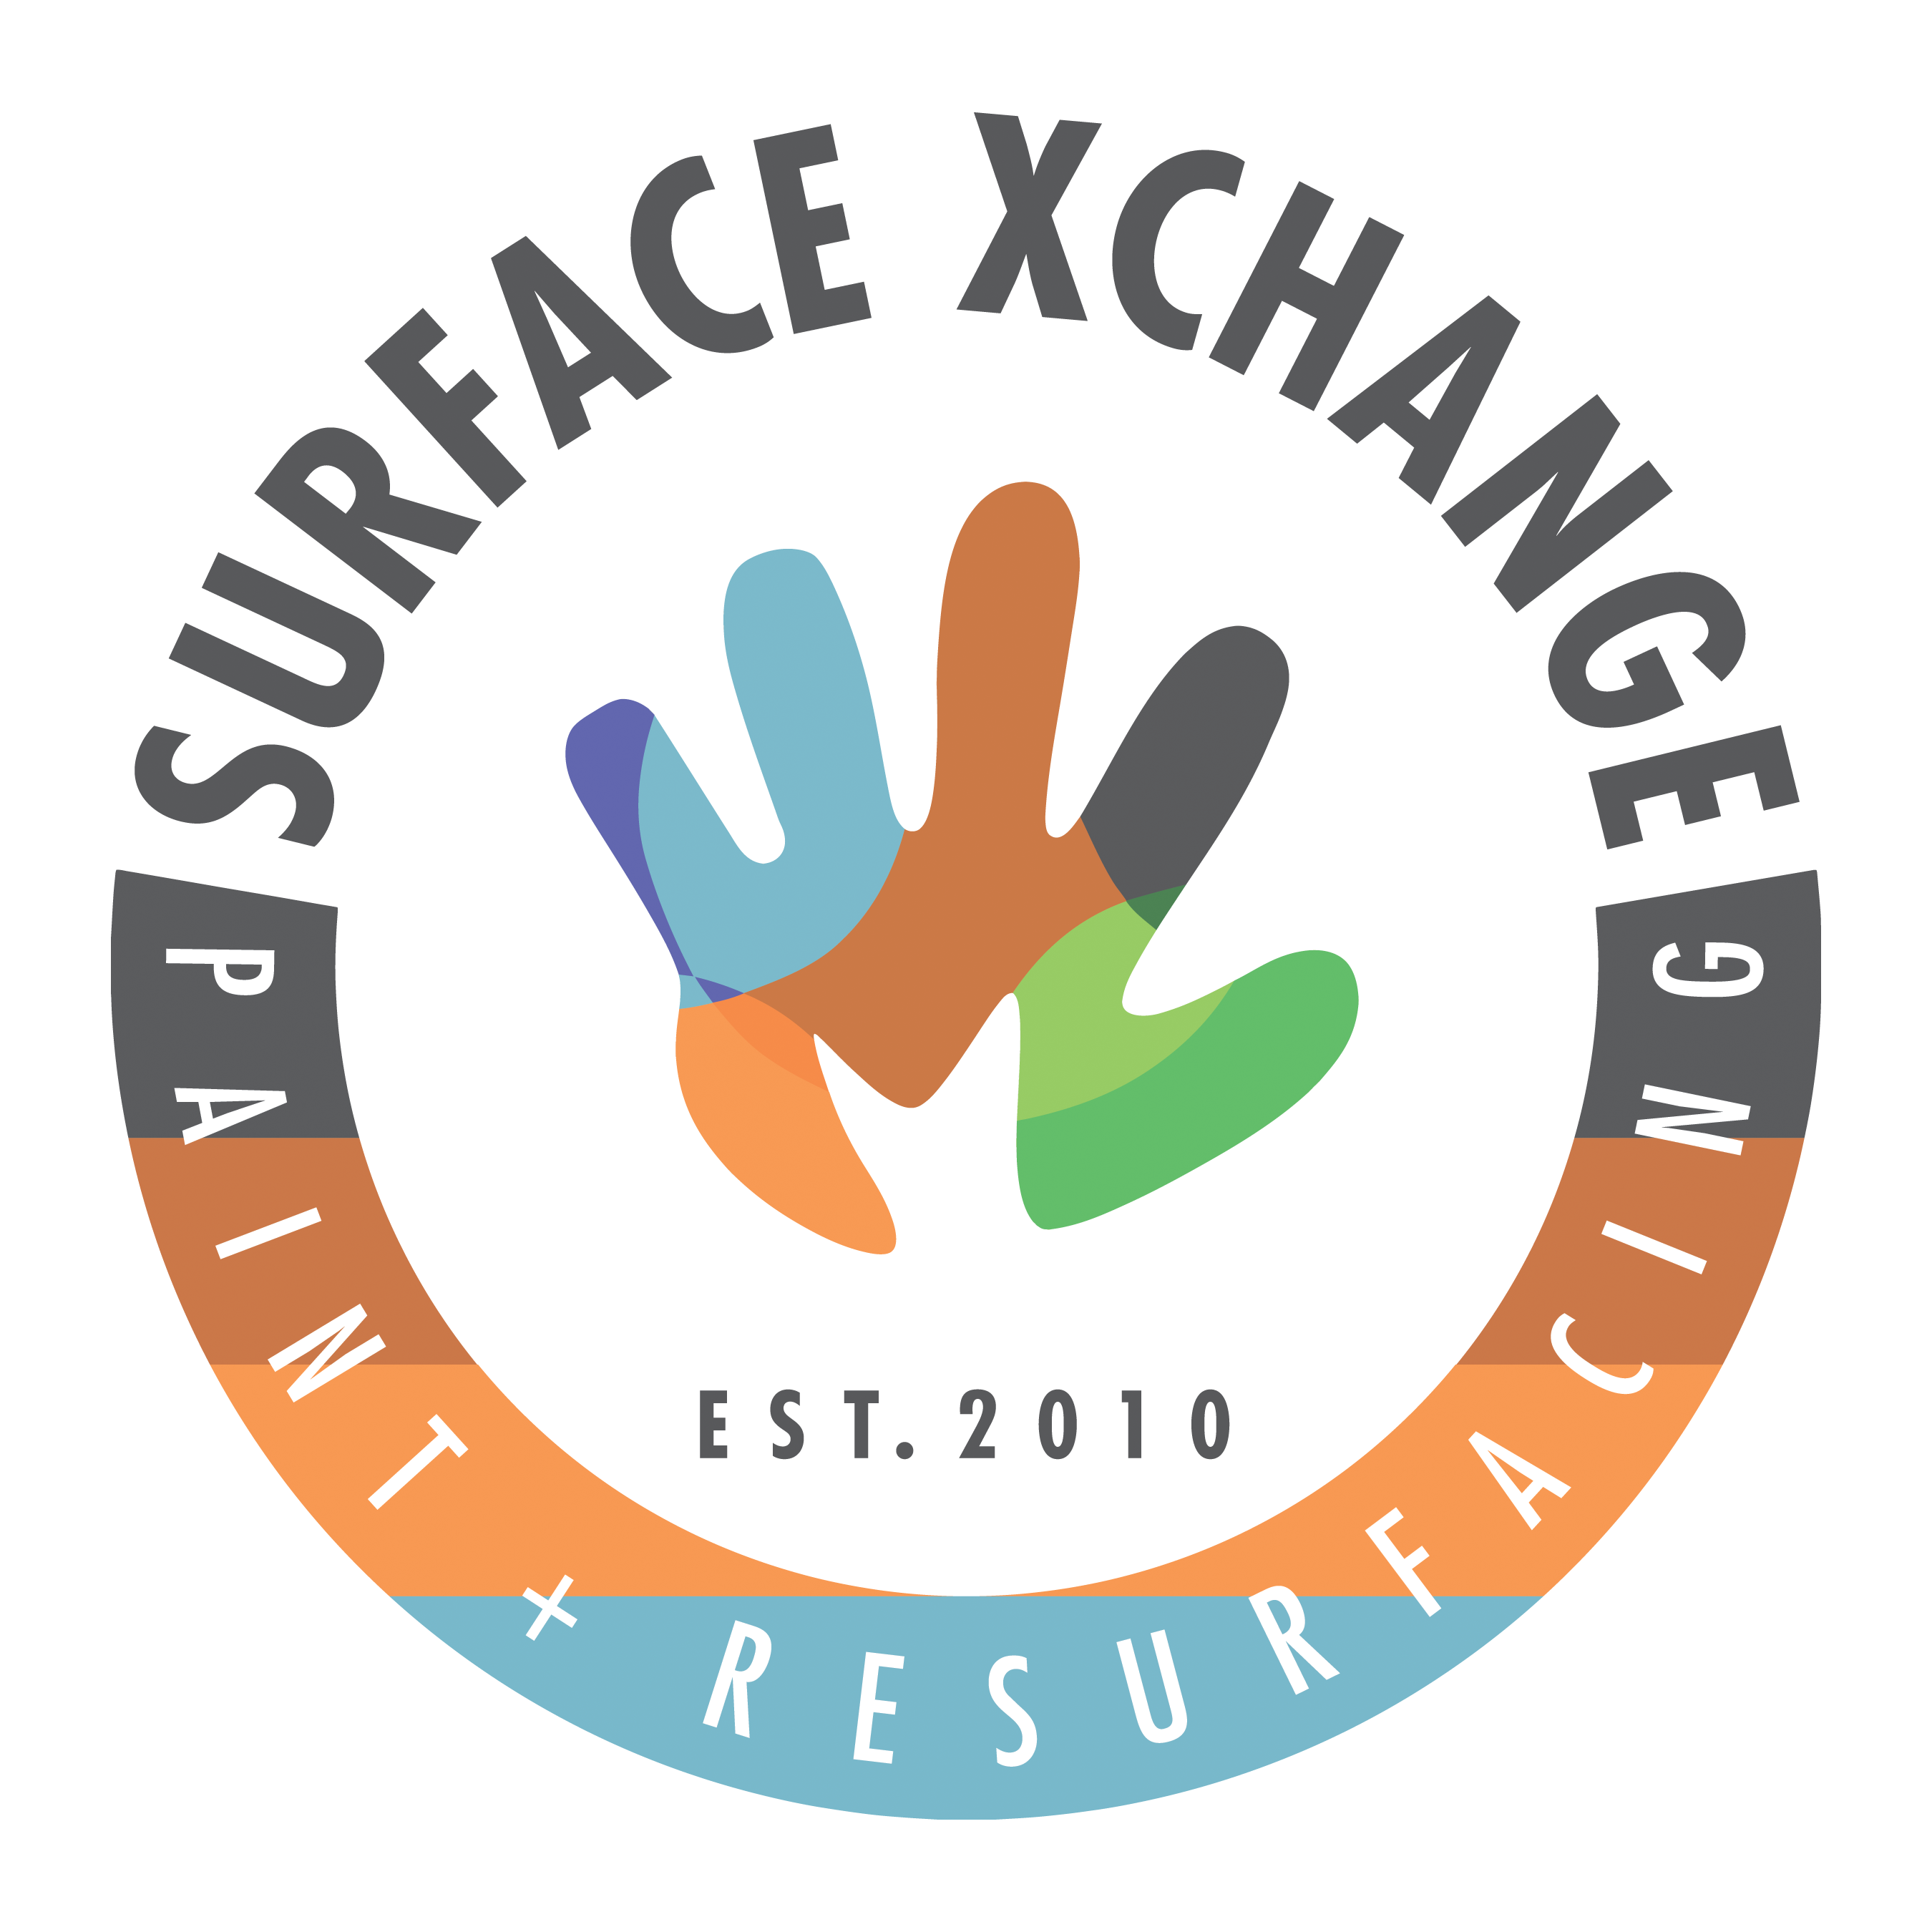 Surface Xchange Resurfacing